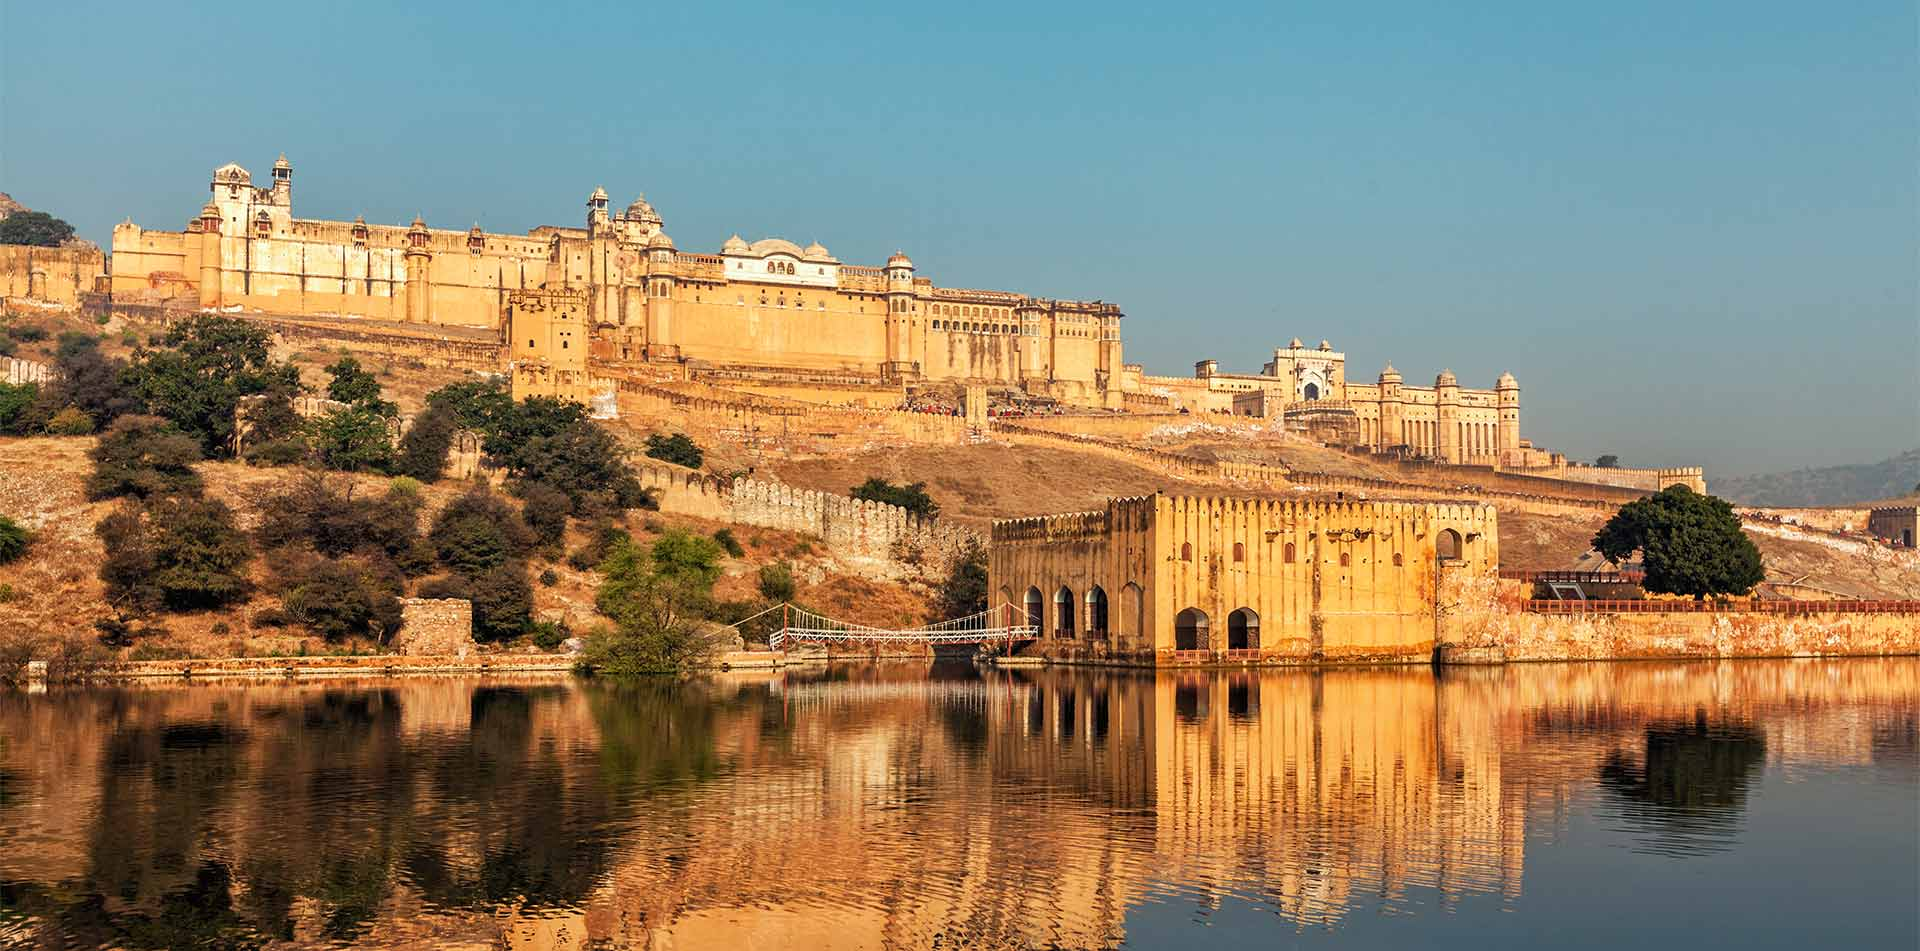 Asia India Rajasthan Jaipur Amber Fort and peaceful water - luxury vacation destinations